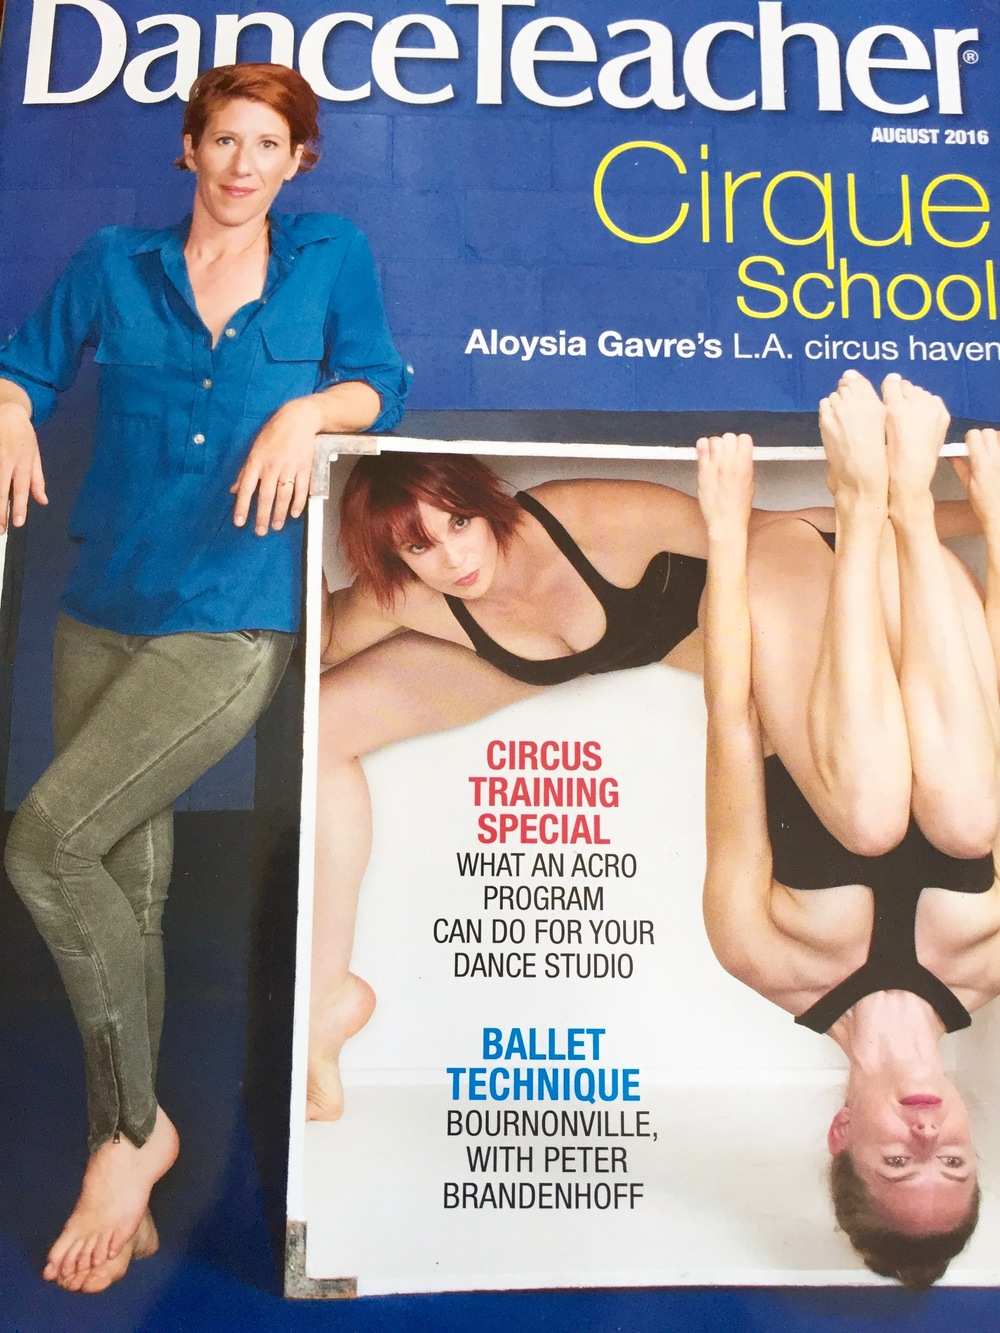 6 page cover feature story on Cirque School